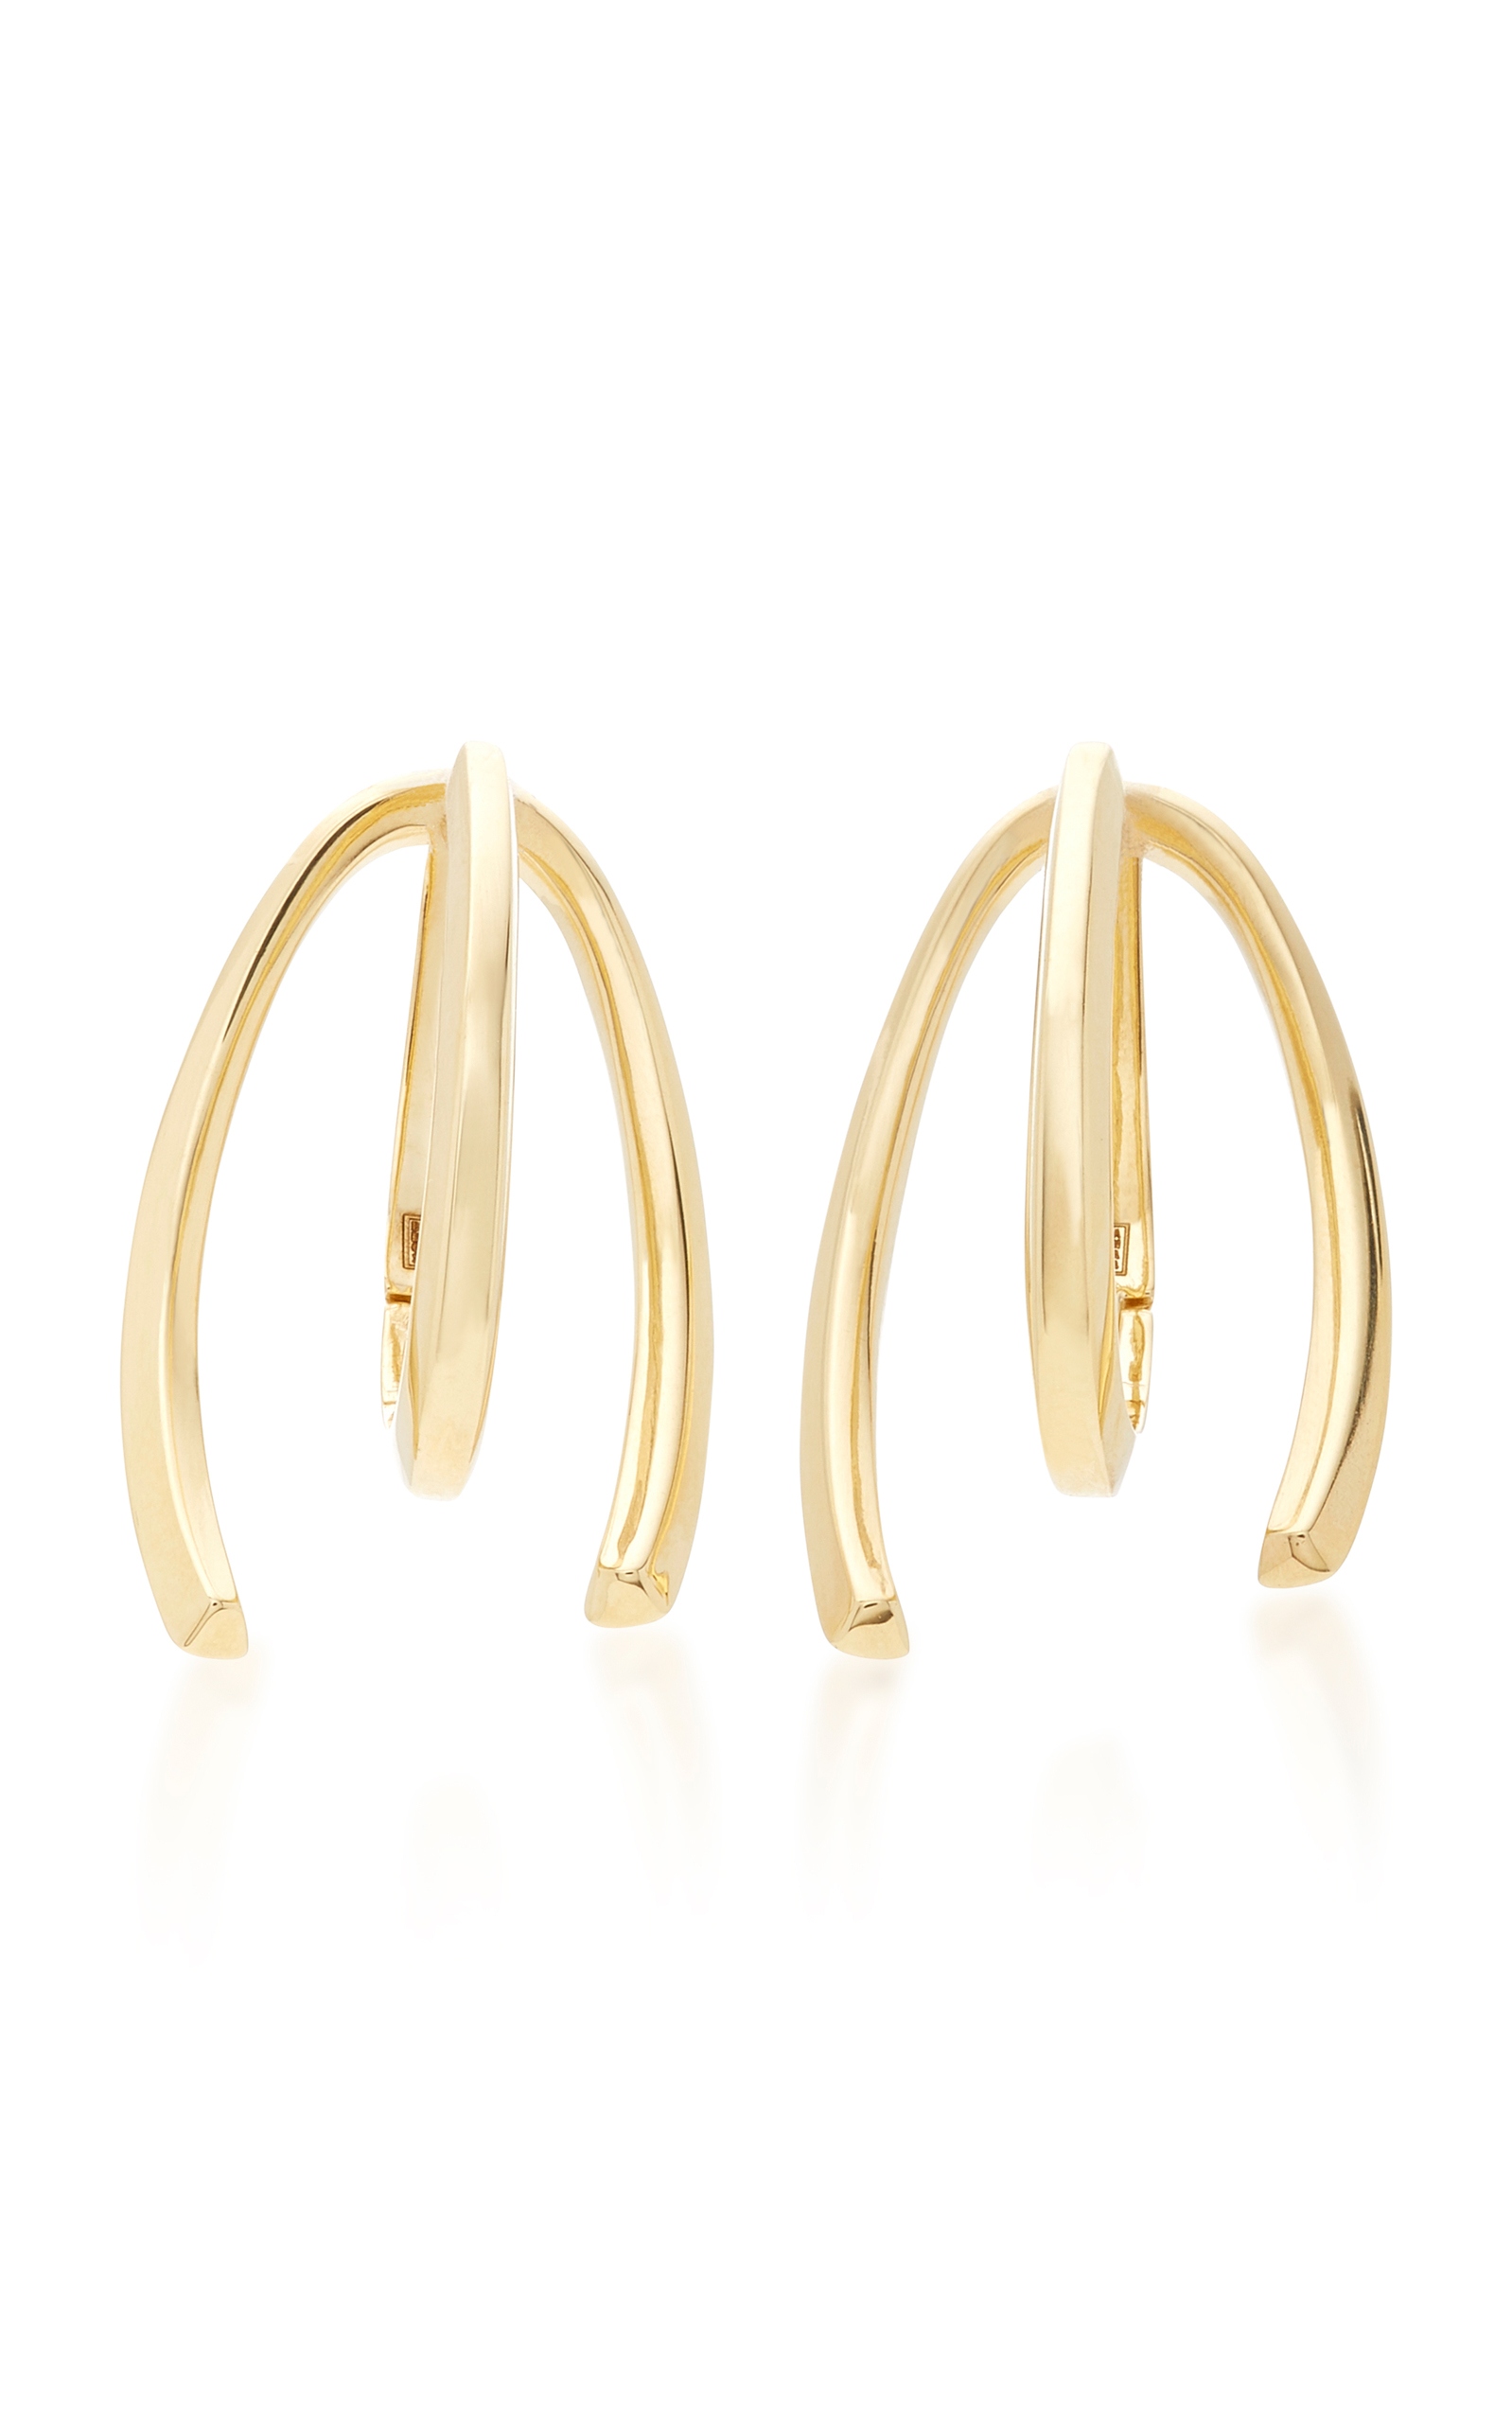 BEA BONGIASCA HONEYSUCKLE 9K GOLD LONG EARRINGS